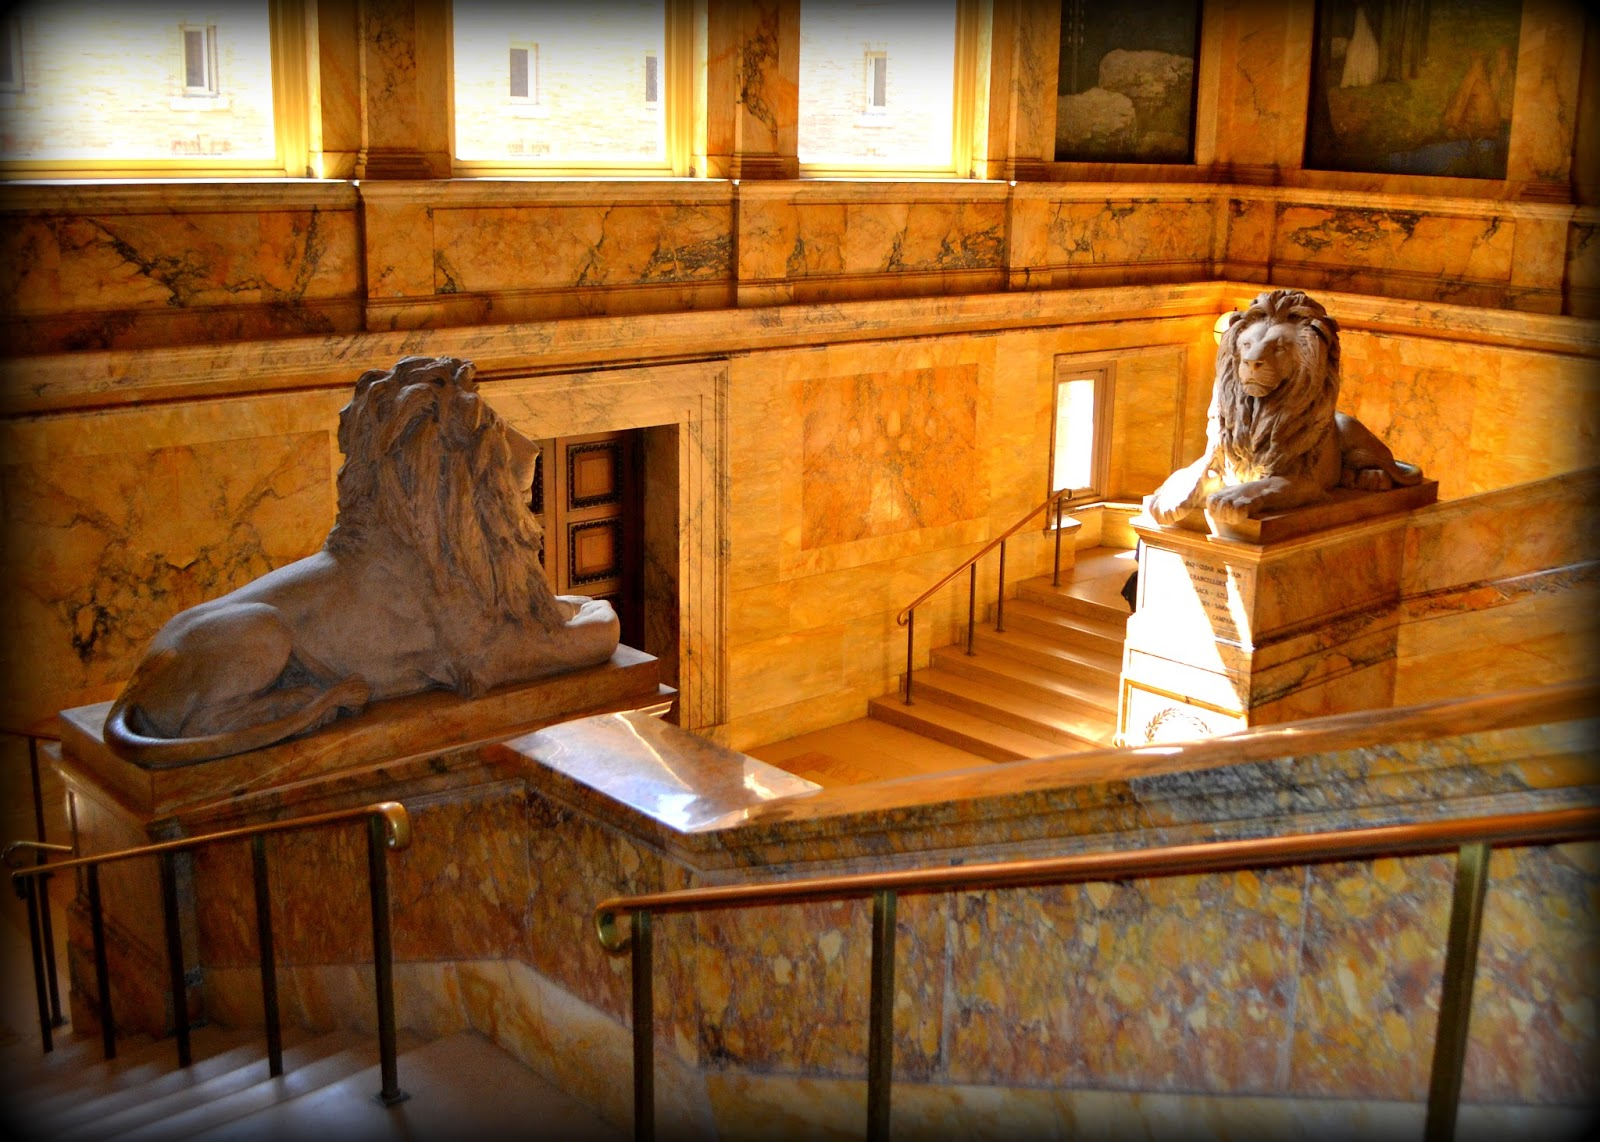 Boston Public Library, lions, stairs